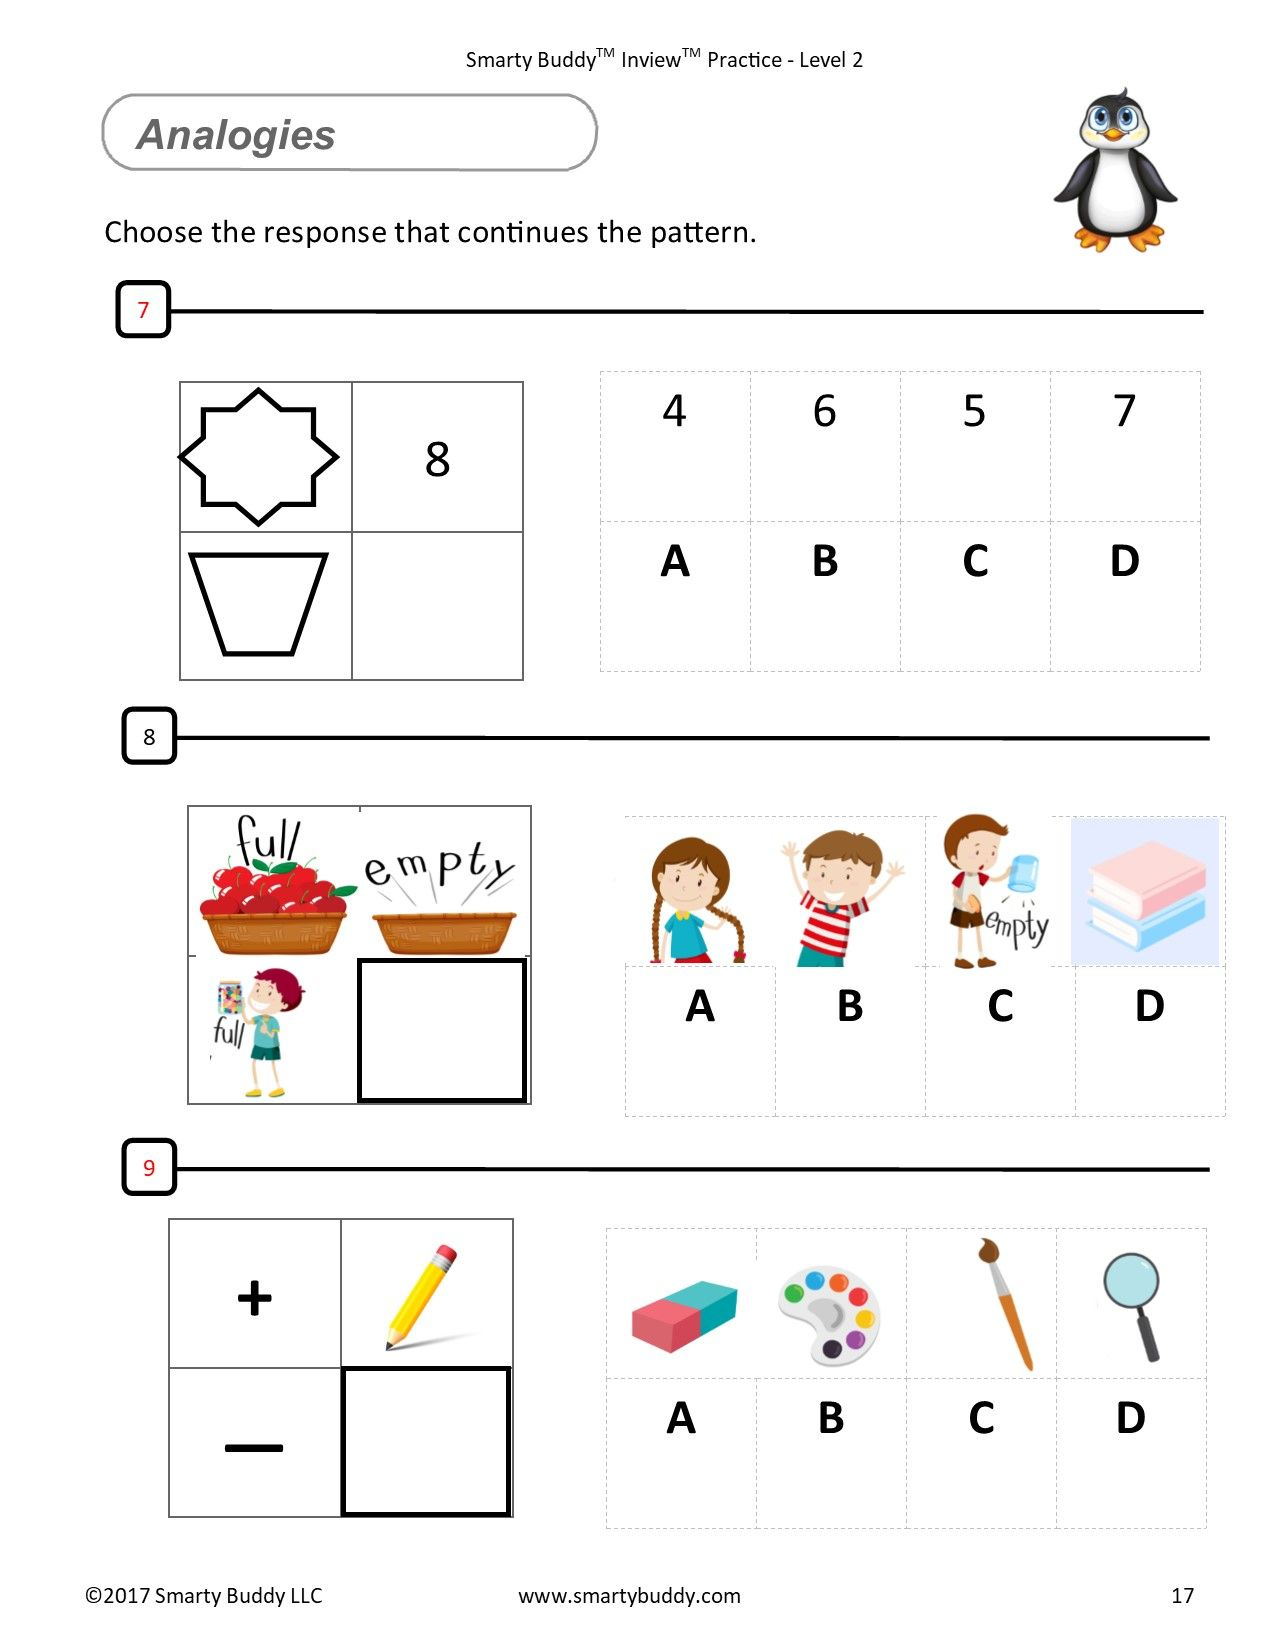 On Thinking Patterns Worksheet